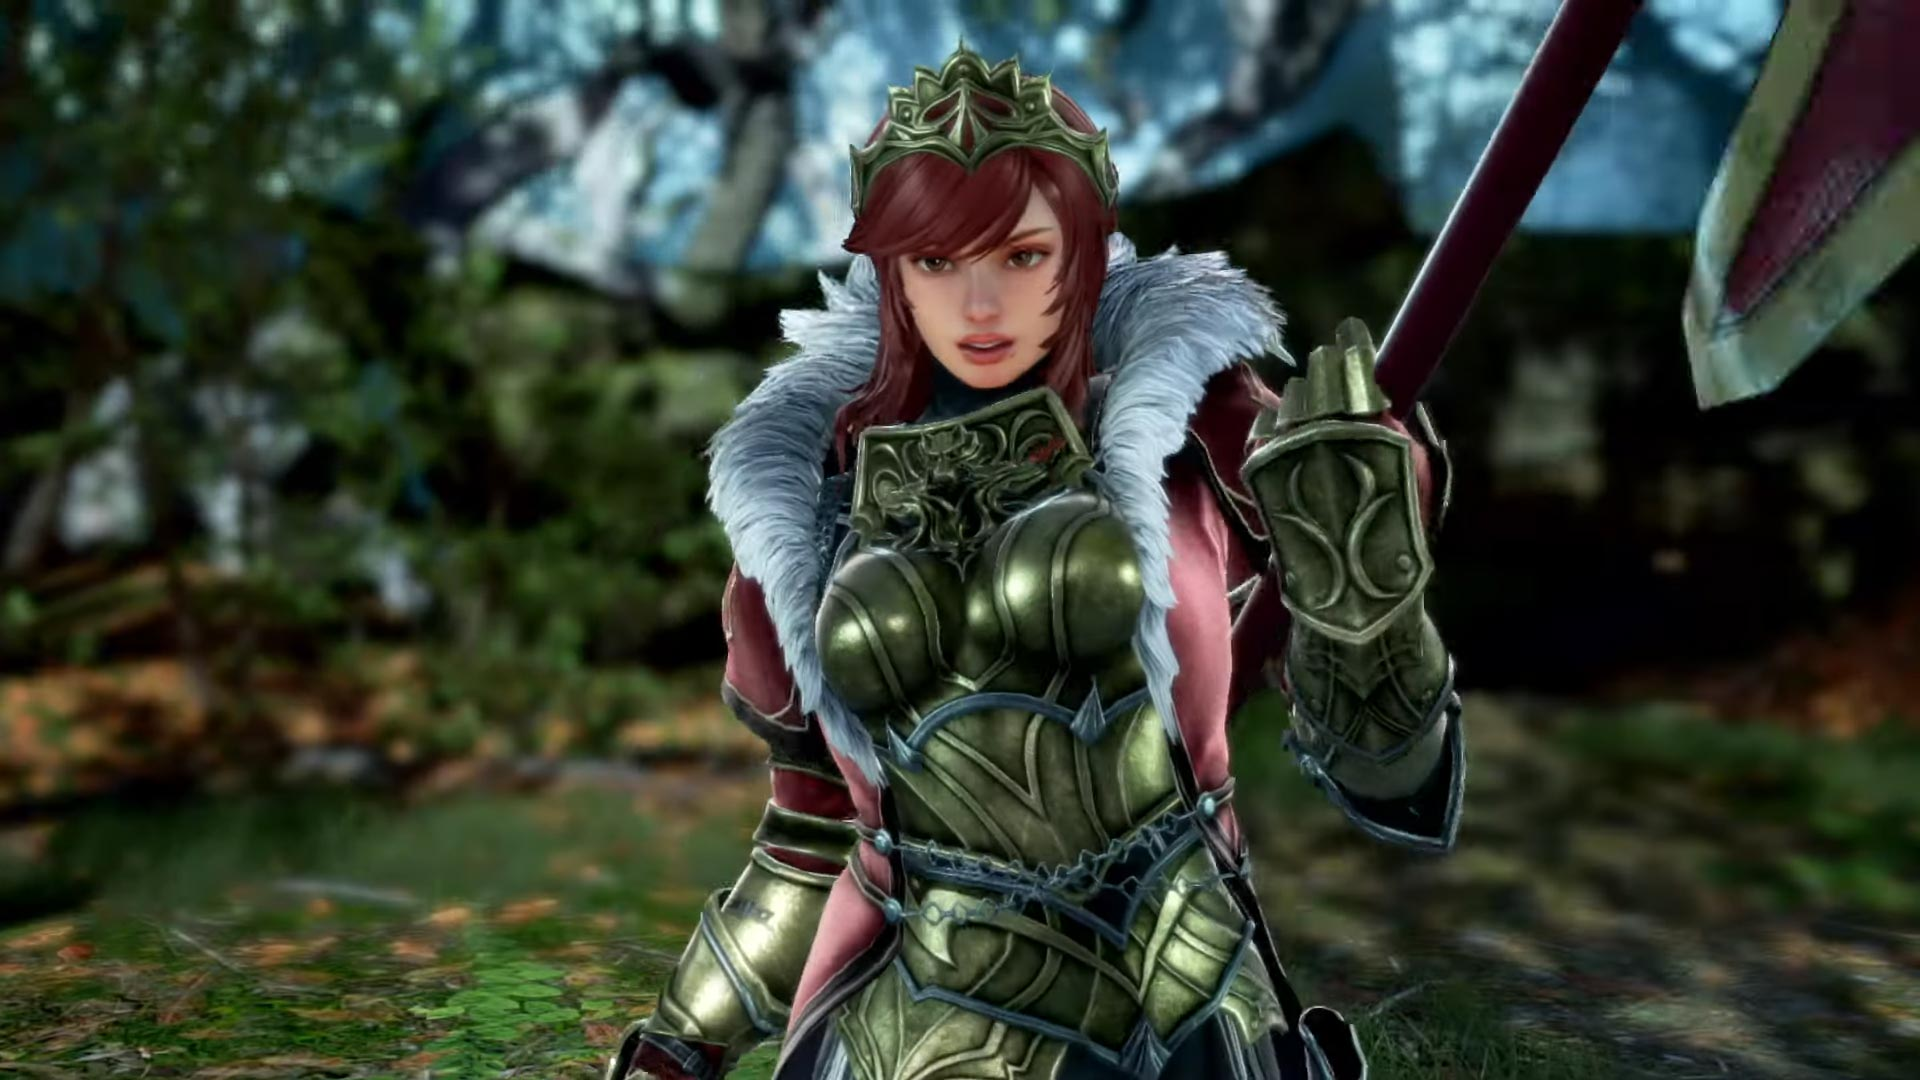 Soul Calibur 6 Hilde Reveal Trailer Gallery 2 out of 9 image gallery